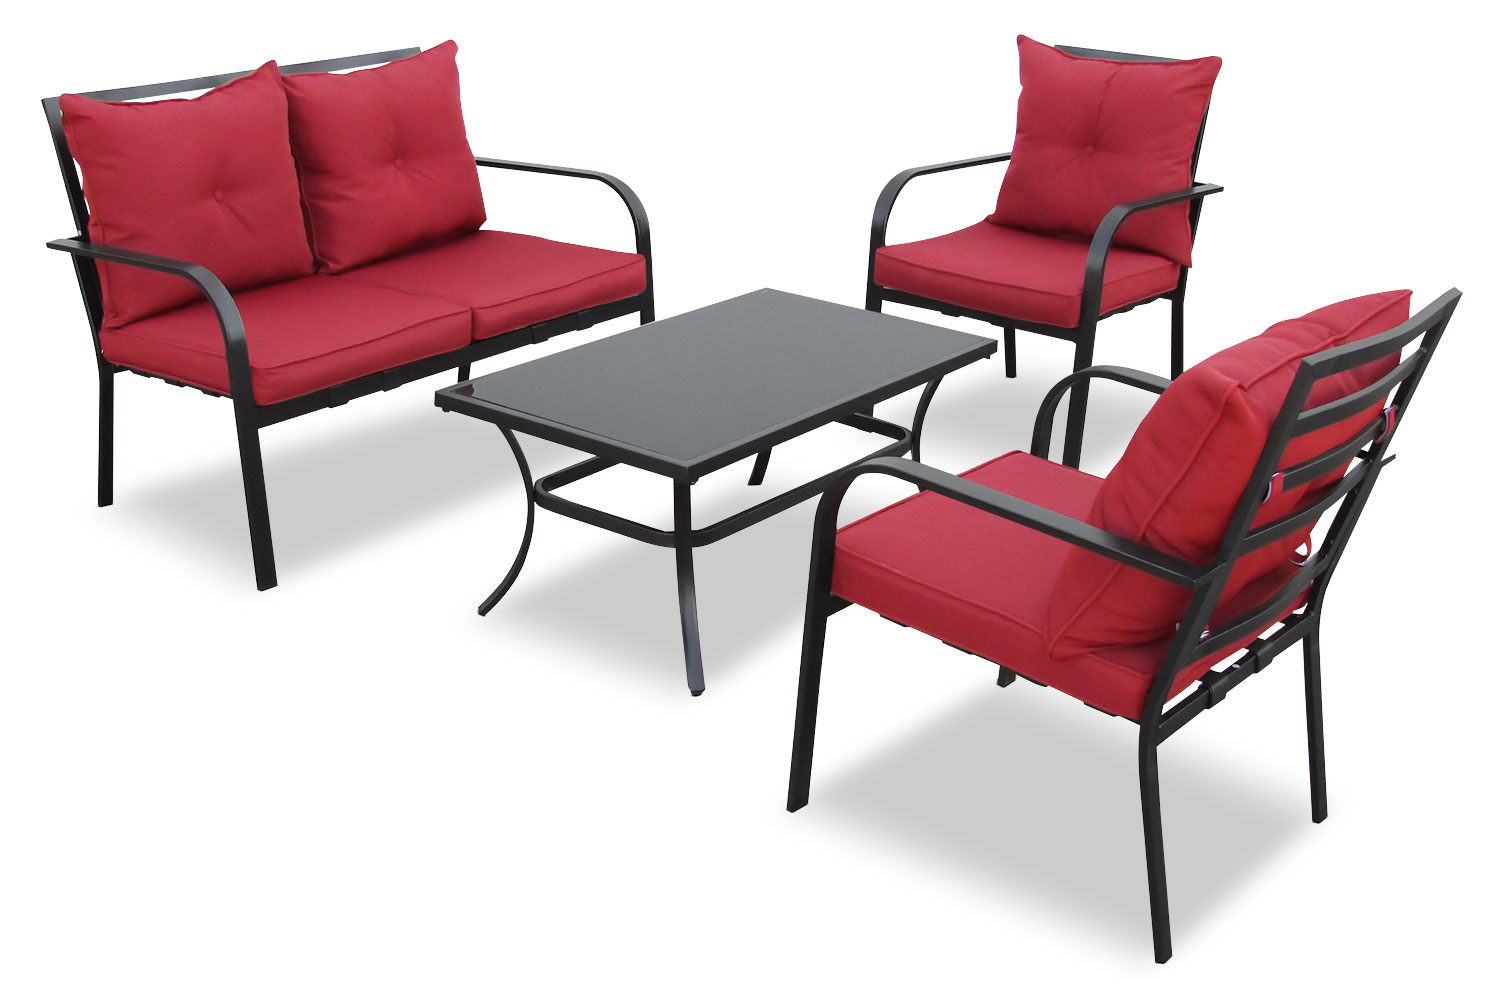 Corliving 4 piece conversation set red united for Outdoor furniture 4 piece